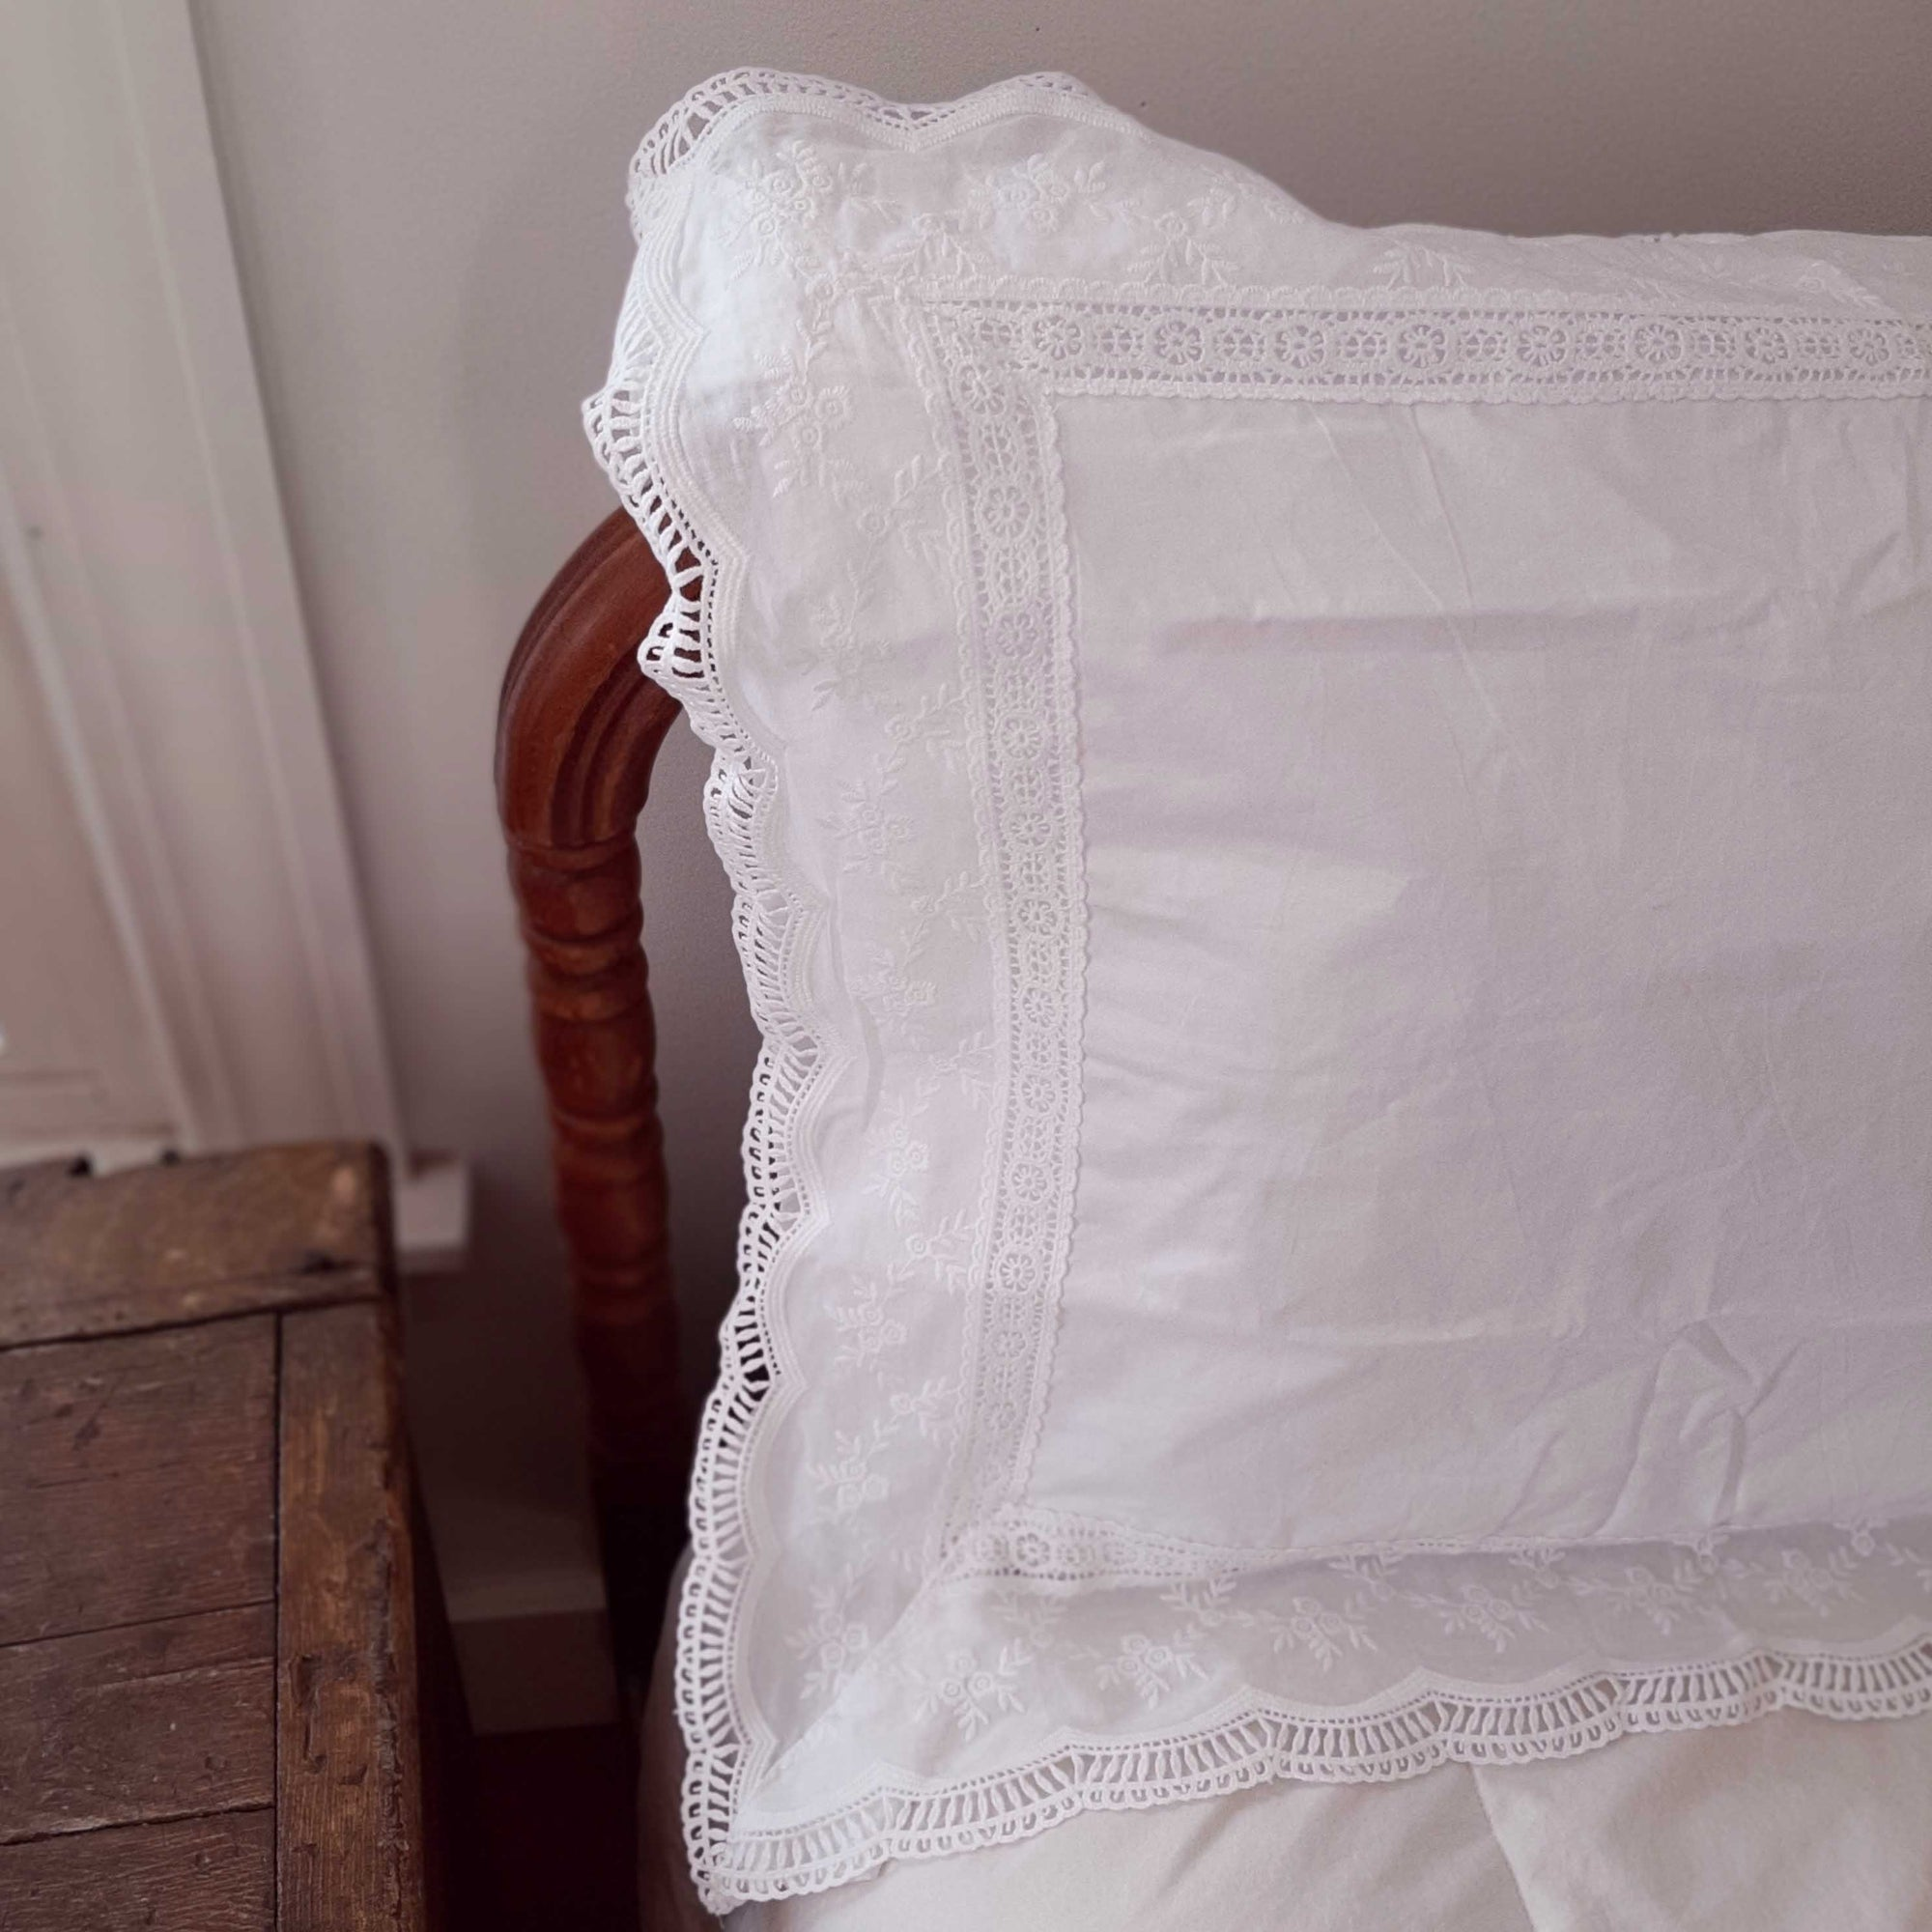 Our Embroidery and Lace Pillow Sham lends a sweet cottage style and create instant vintage charm. This crisp-white sham  features beautiful edging all around with detailed lace and delicate embroidered flowers. This lace edge sham will add texture and a charming vintage look to your room.  Made with 100% cotton, our Embroidery and Lace Pillow Sham has a vintage cotton quality that is soft and breathable without static cling.